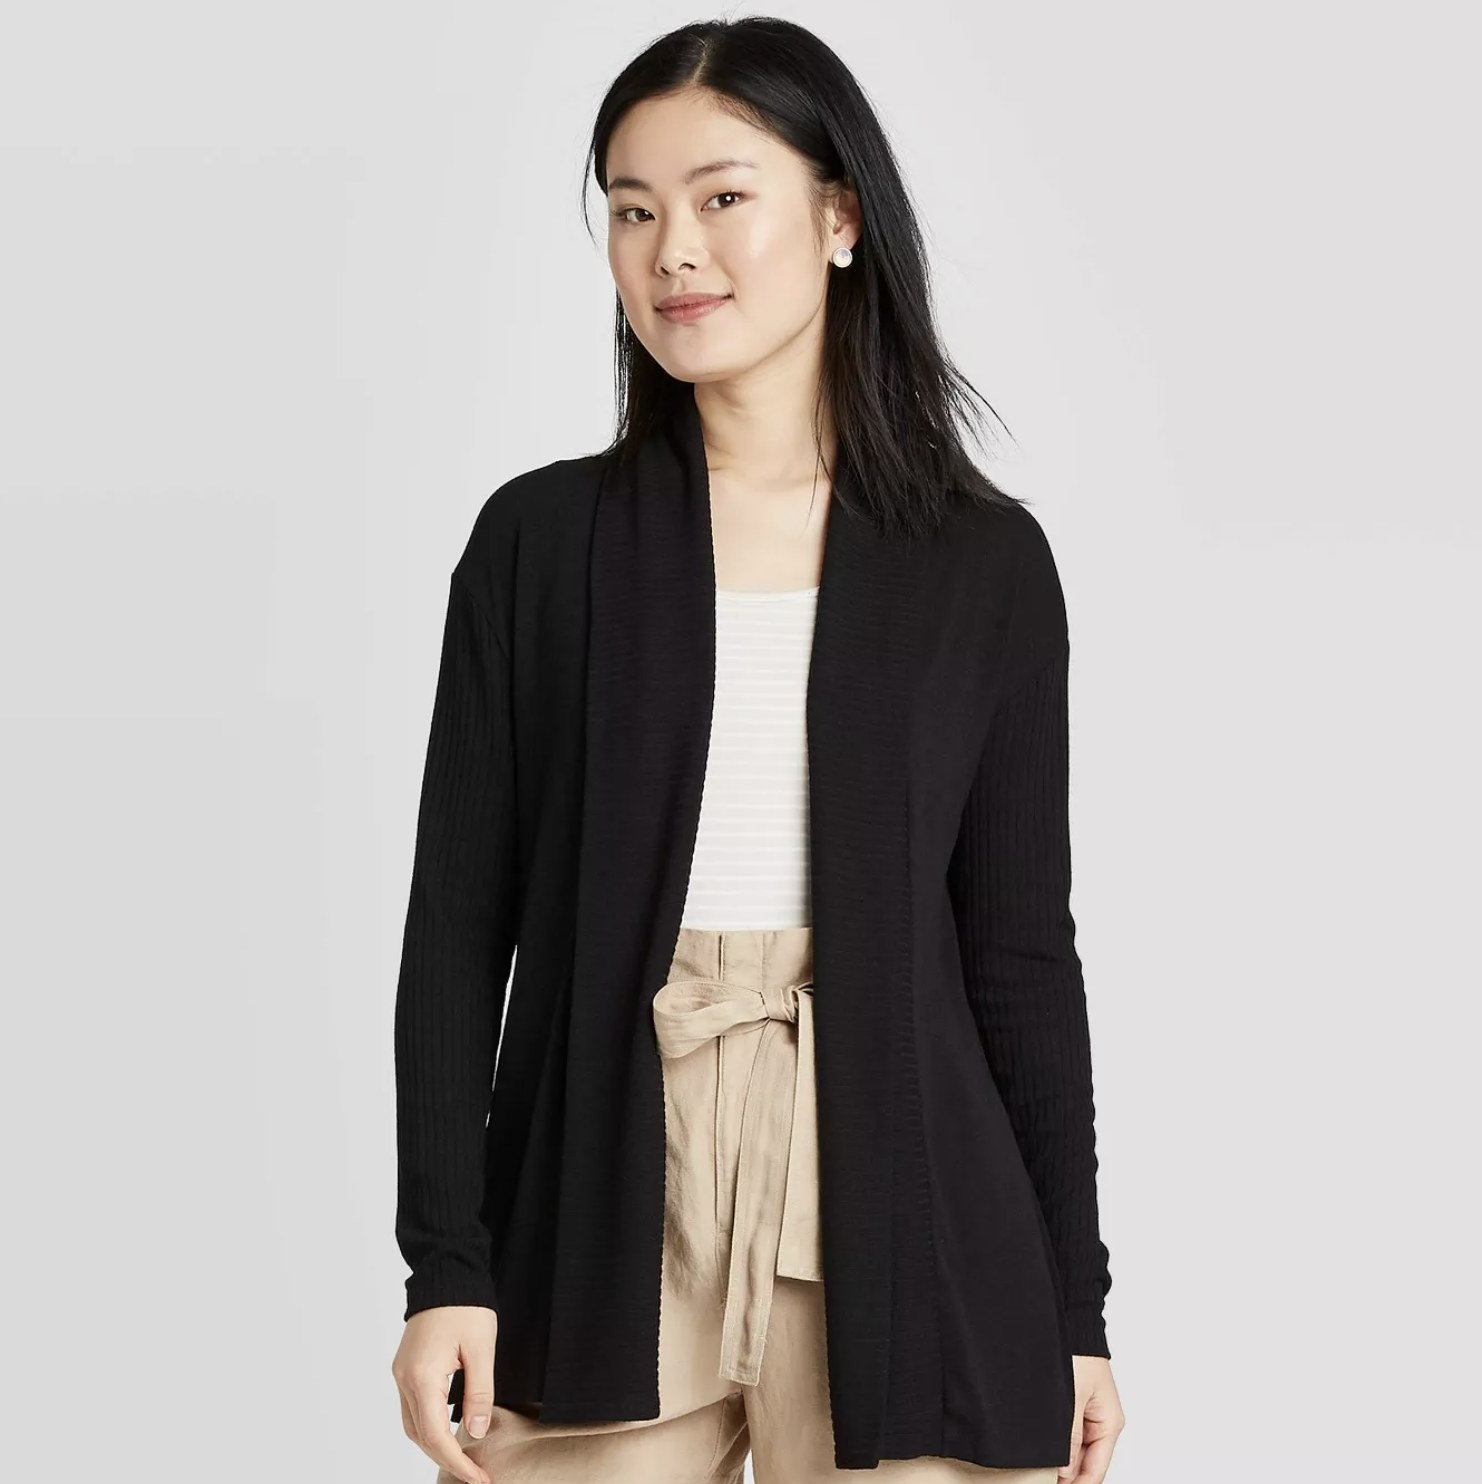 A model wearing an unbuttoned black cardigan that hits at the hips